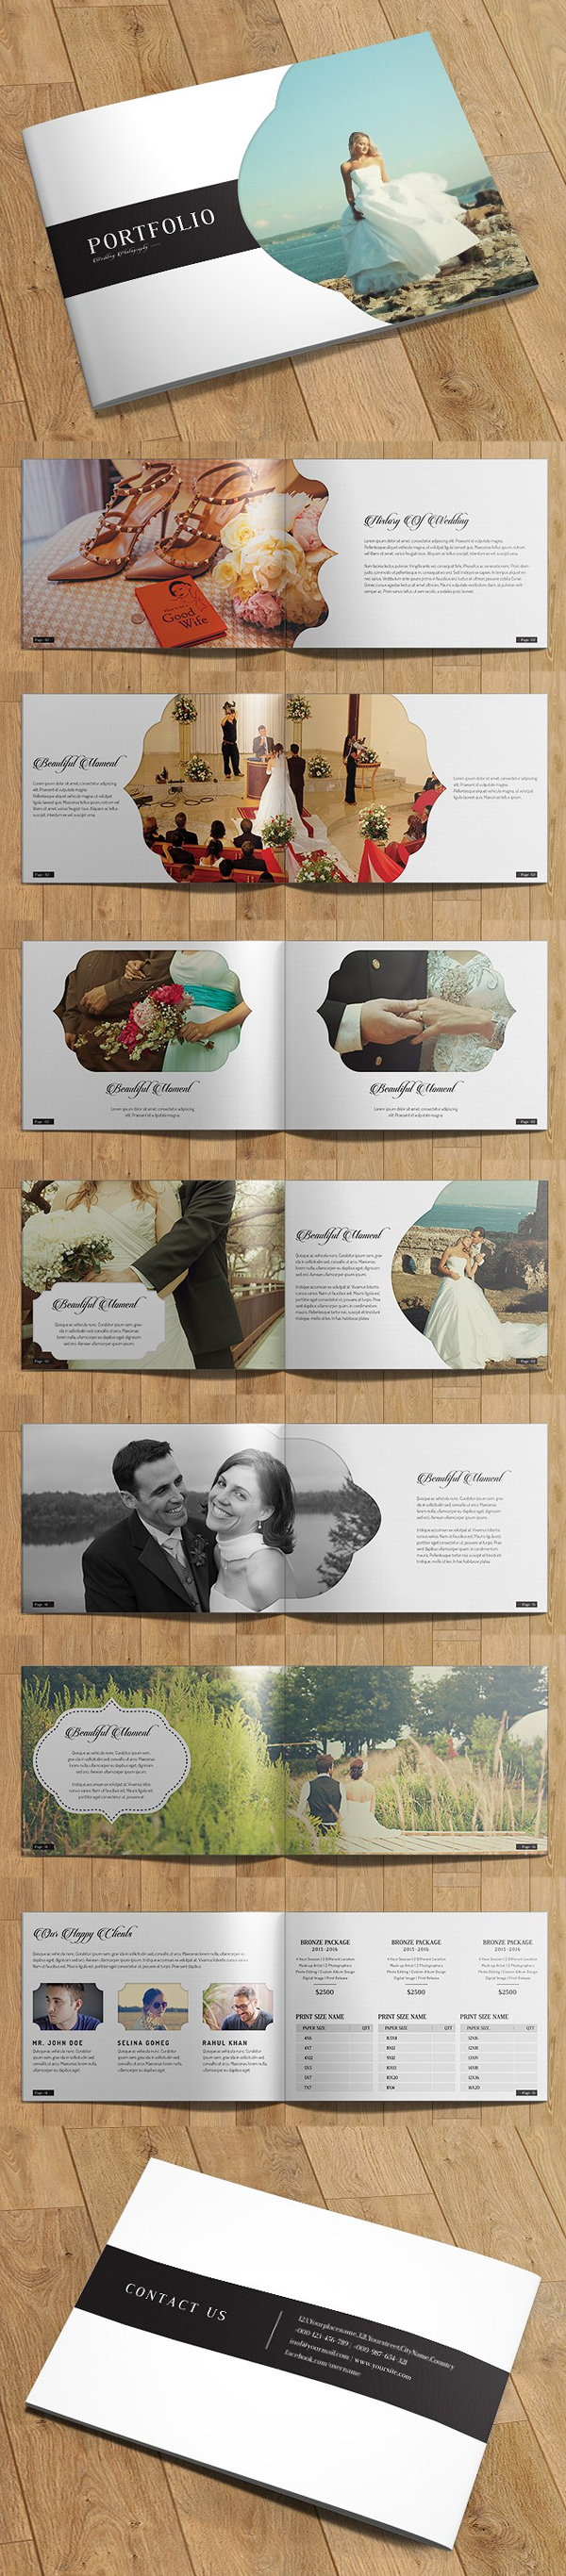 100 Professional Corporate Brochure Templates - 94